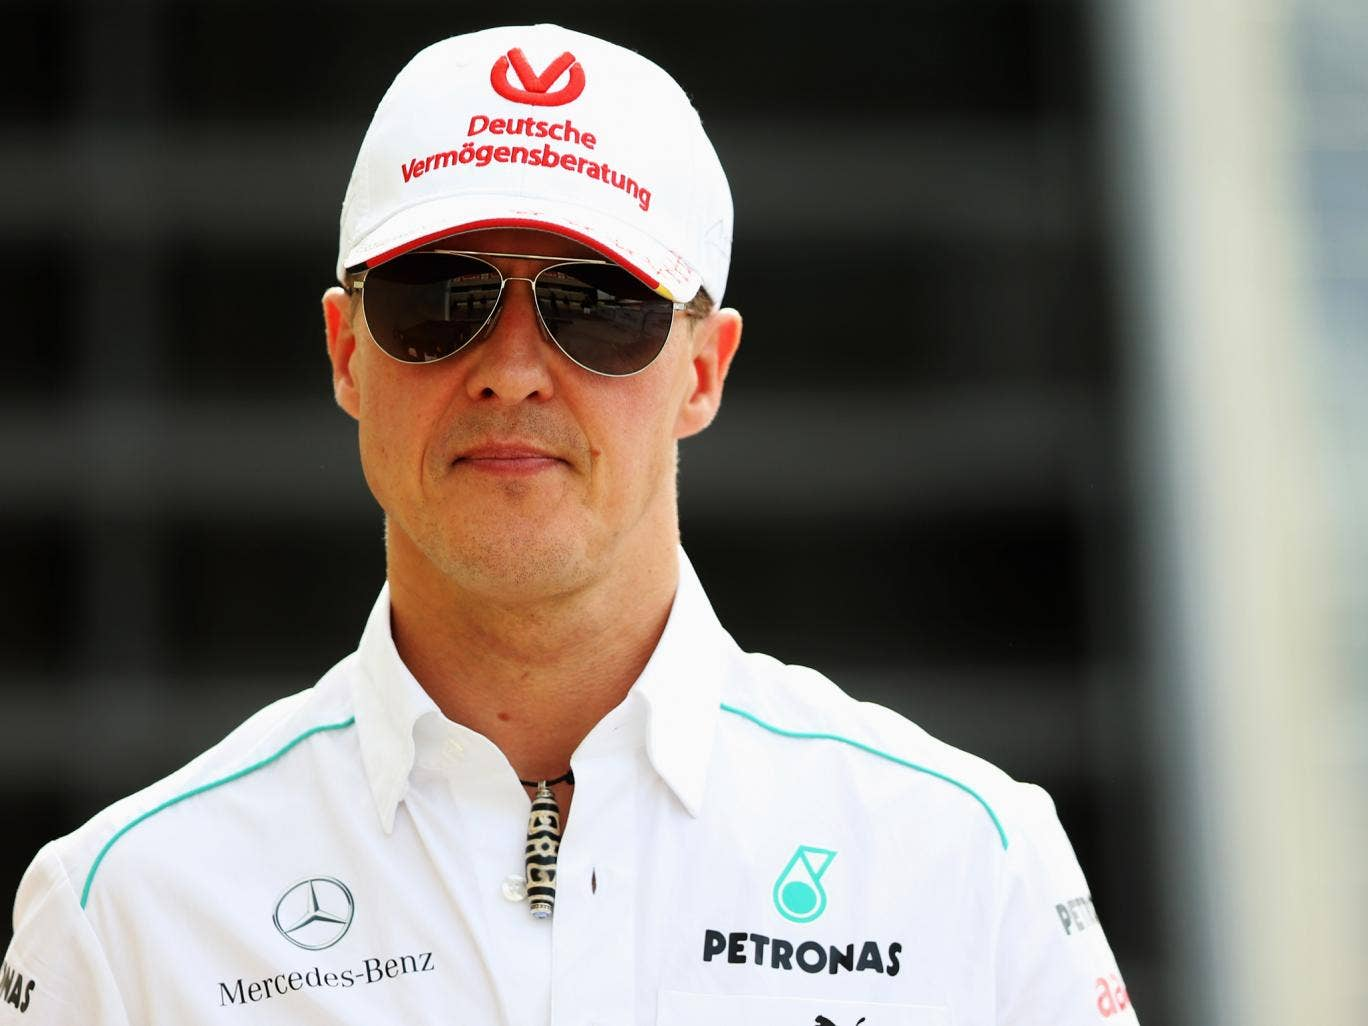 Michael Schumacher before his retirement from Formula One